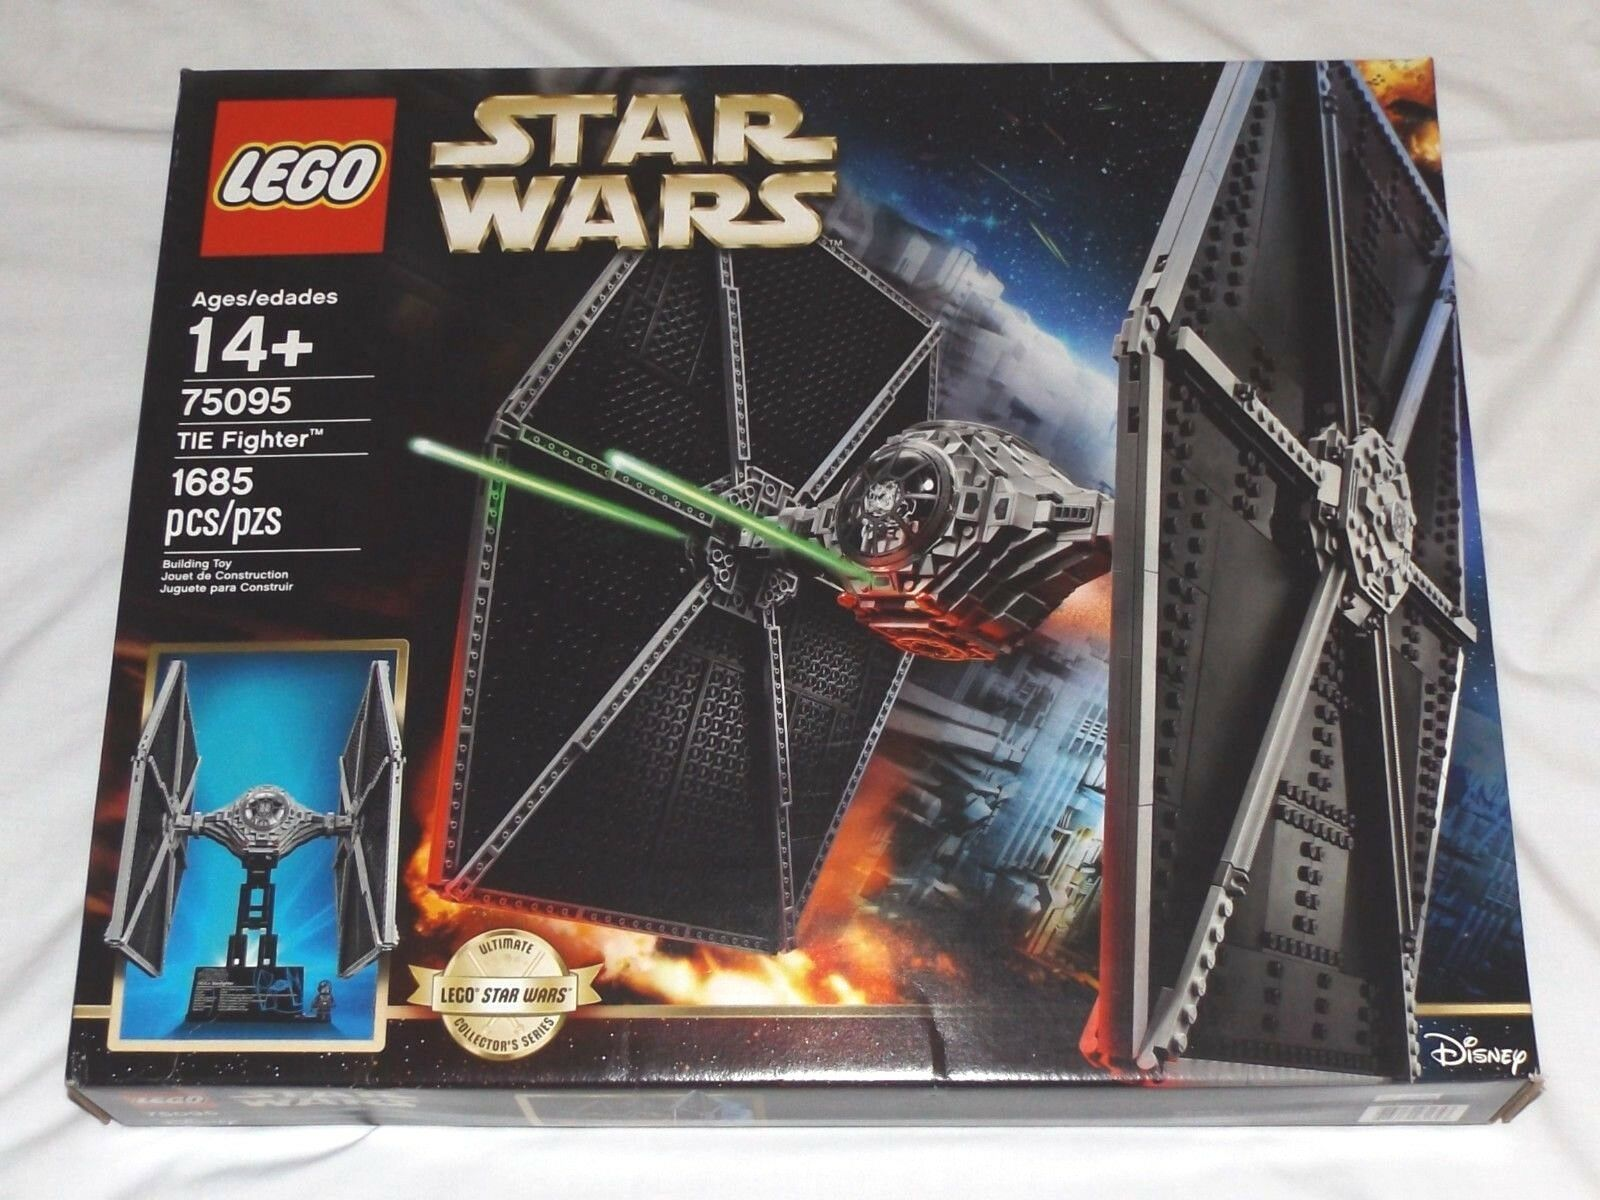 LEGO Star Wars TIE FIGHTER DAMAGED BOX Ultimate Collector Series UCS 75095 pilot